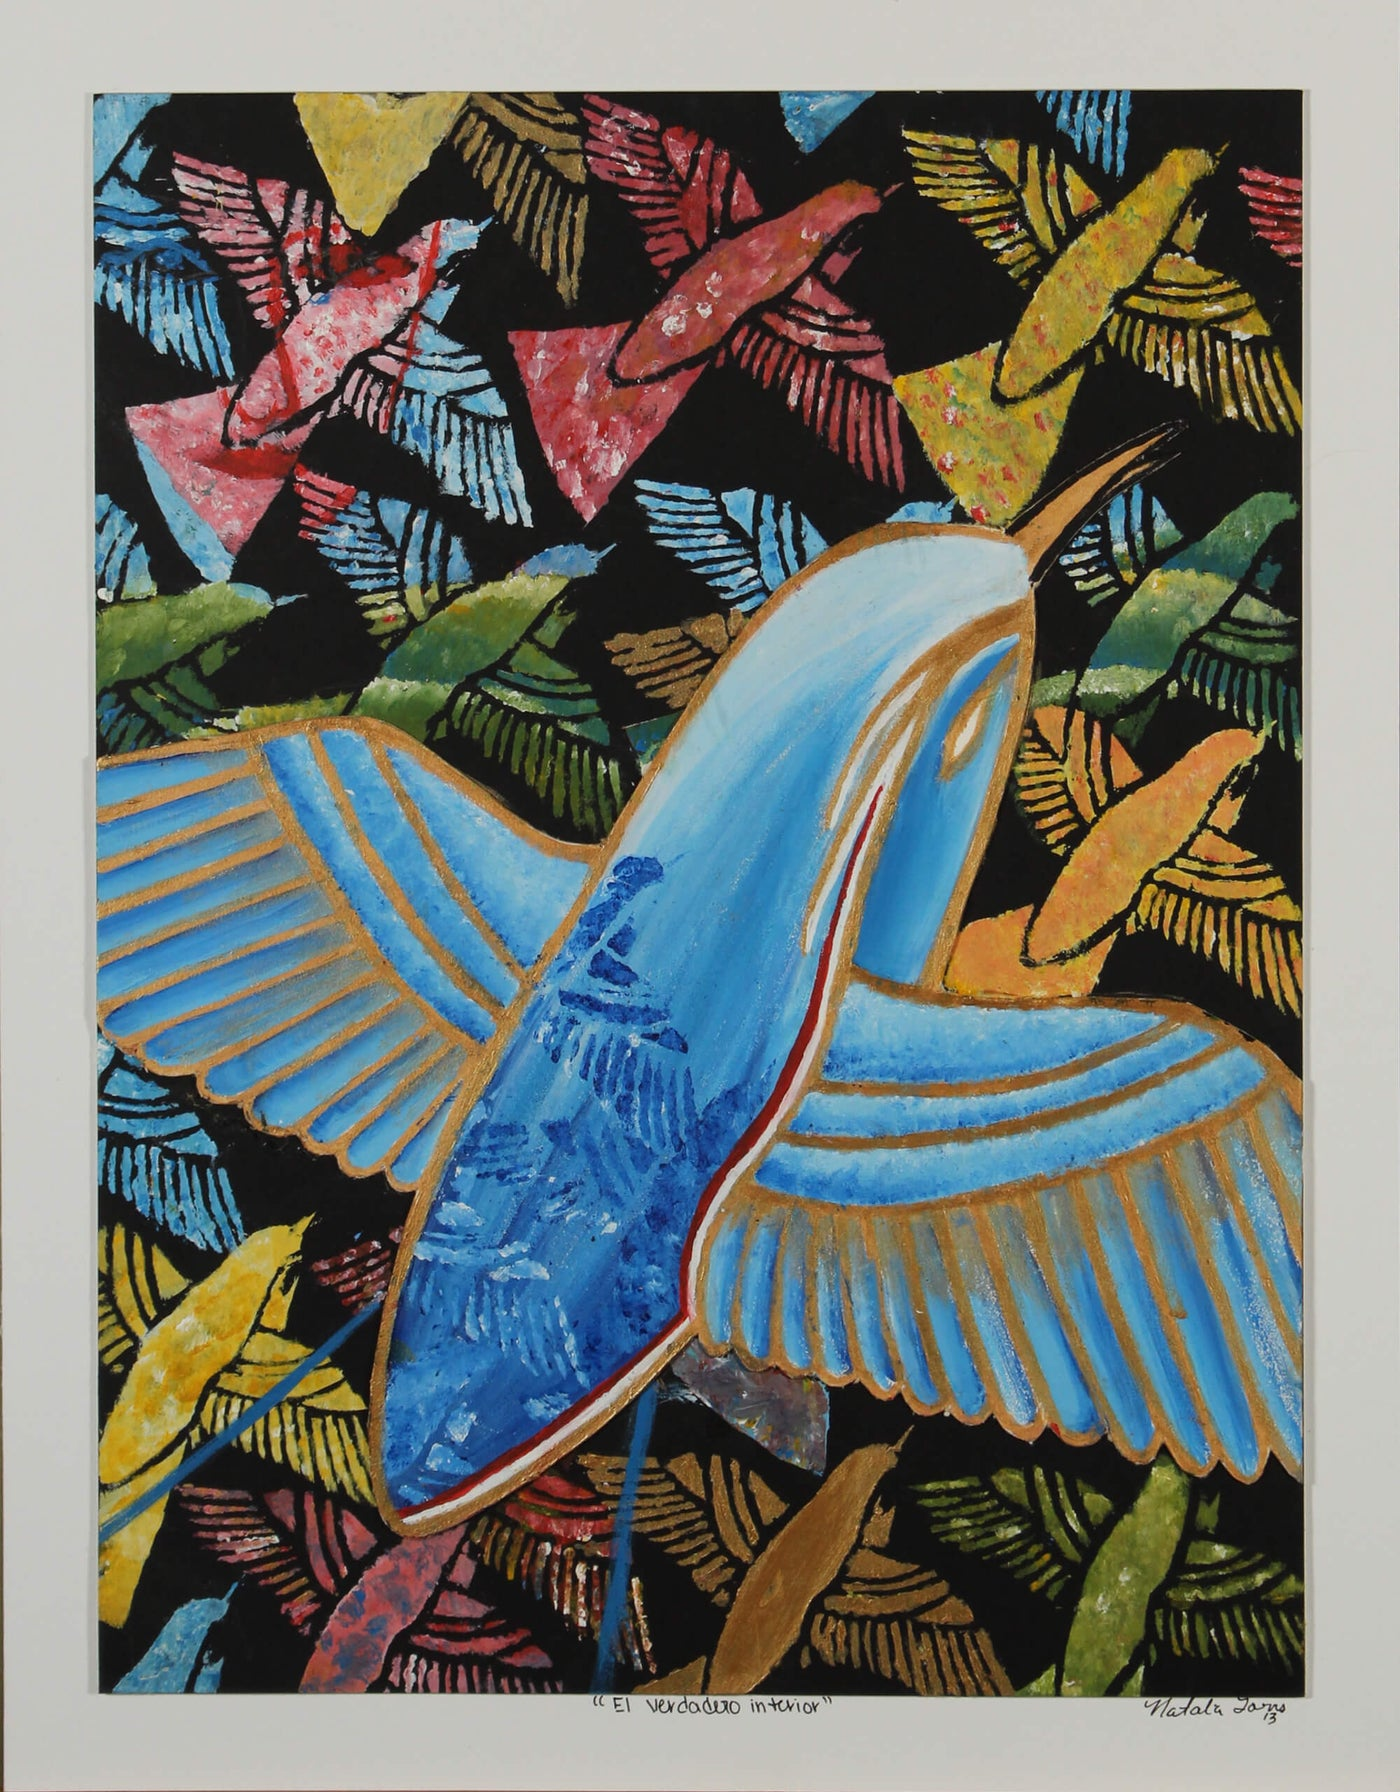 Acrylic additive monotype of birds flying on black sky by Natalia Torres